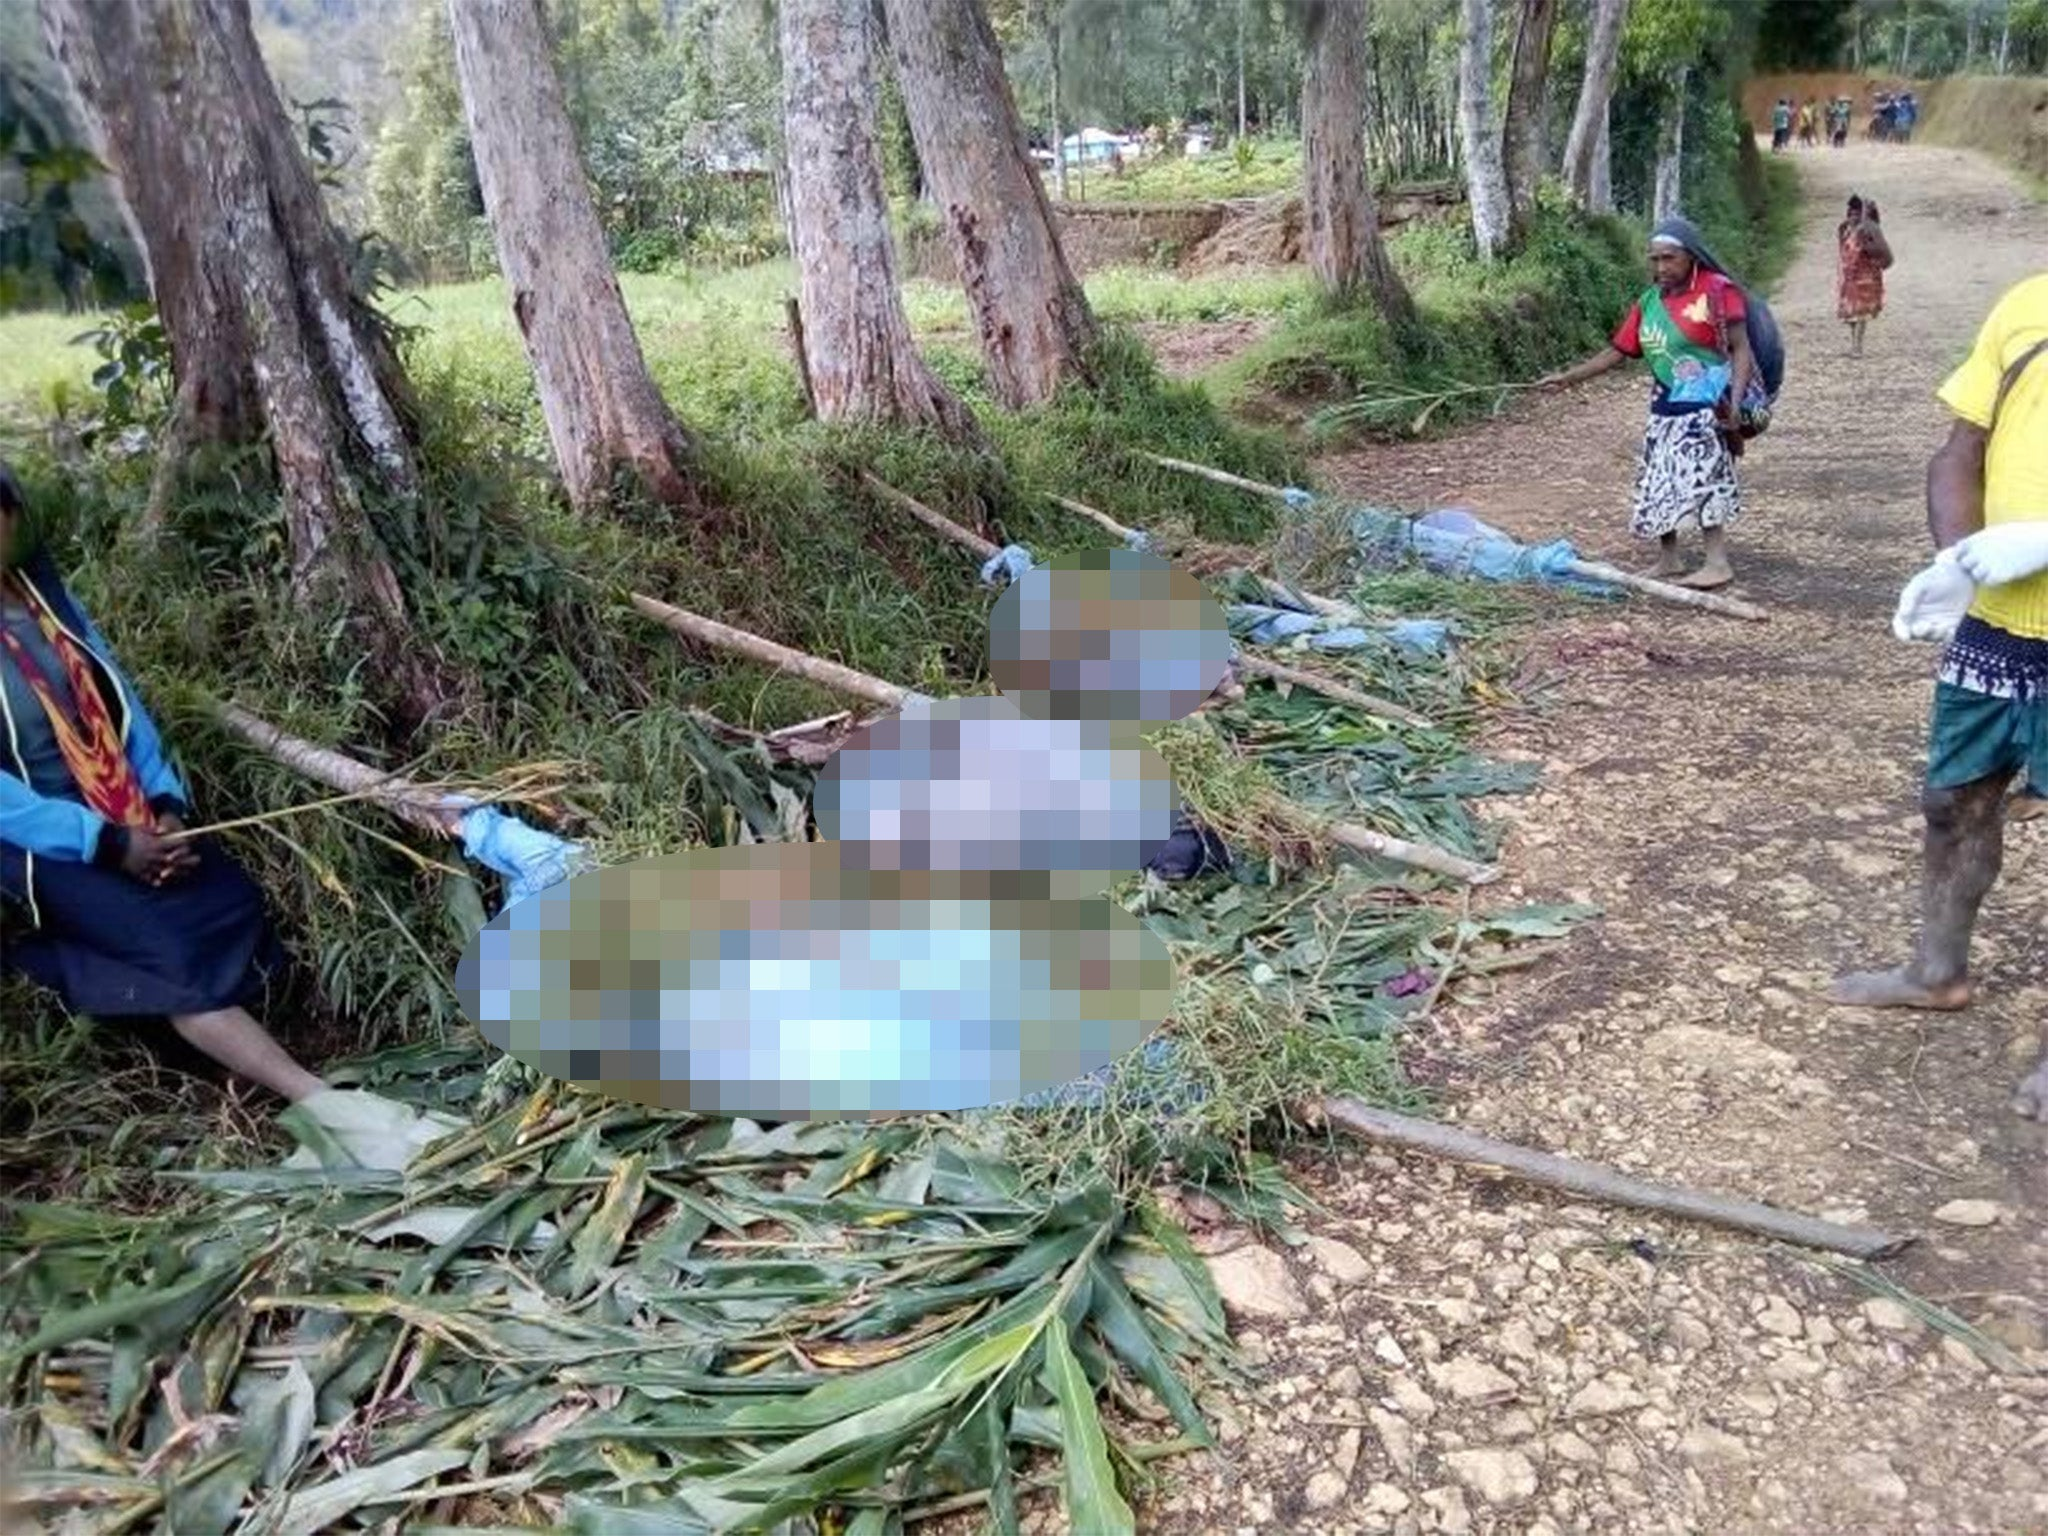 Tribal massacre sees pregnant women and children among dozens hacked to death in Papa New Guinea